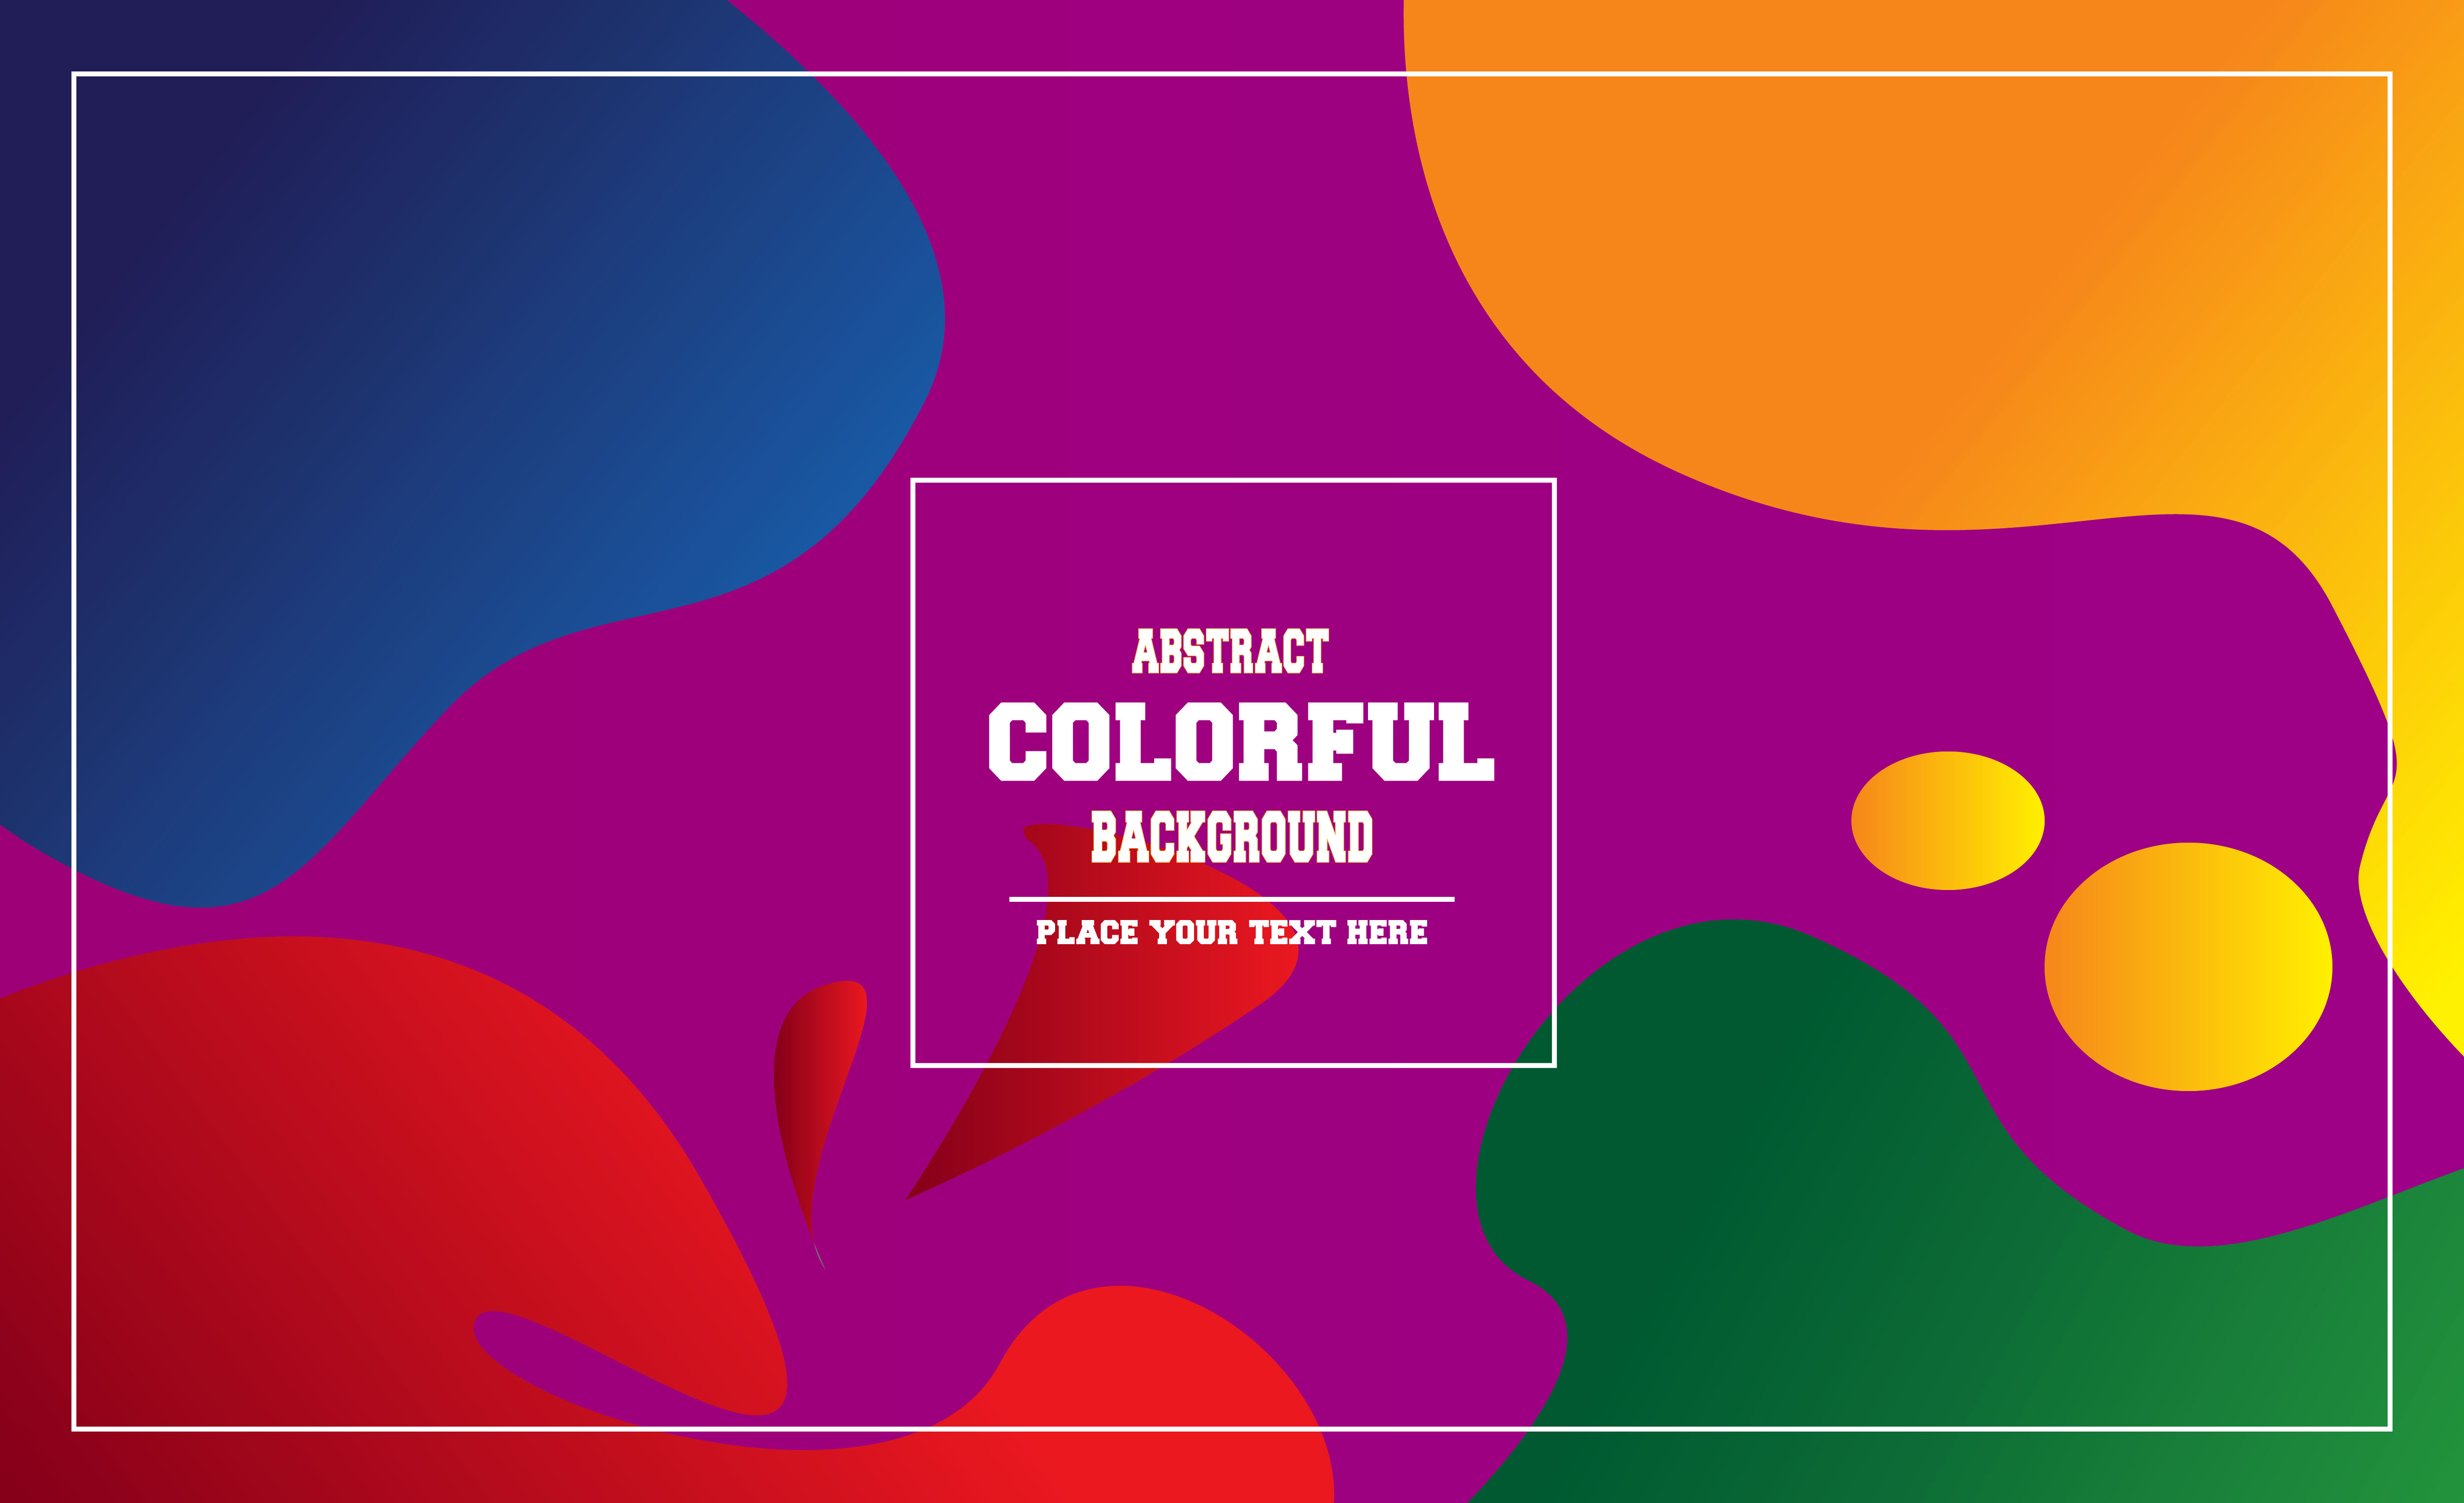 Download Free Colorful Abstract Background Graphic By Mahesa Design Creative for Cricut Explore, Silhouette and other cutting machines.